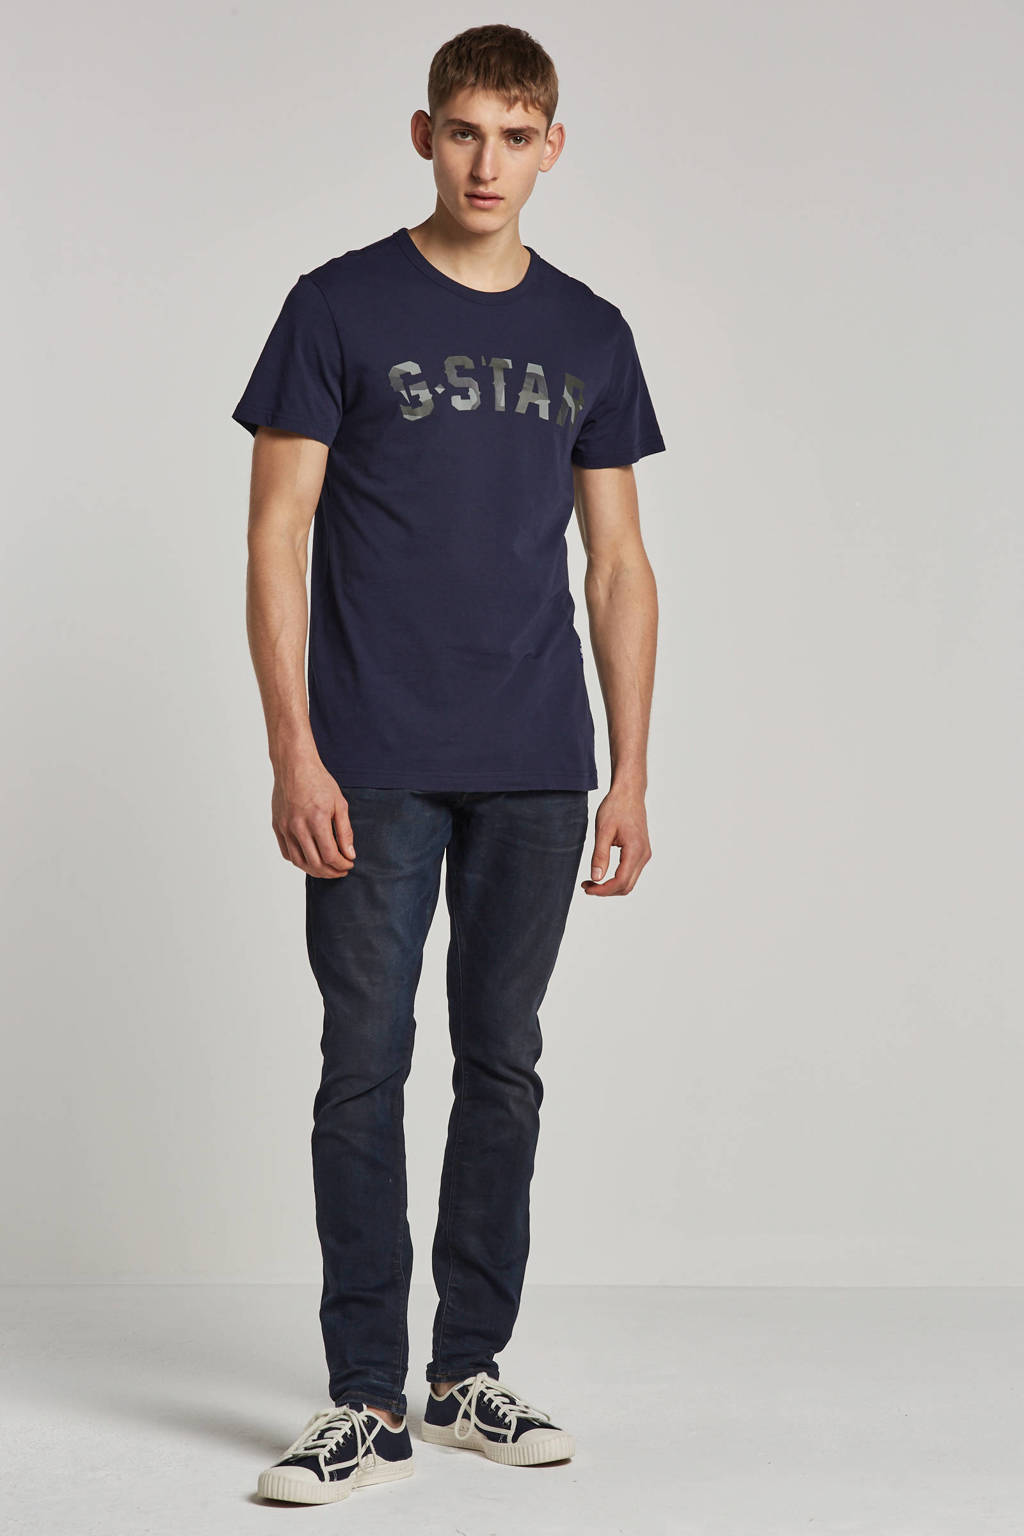 G-Star RAW T-shirt, Donkerblauw